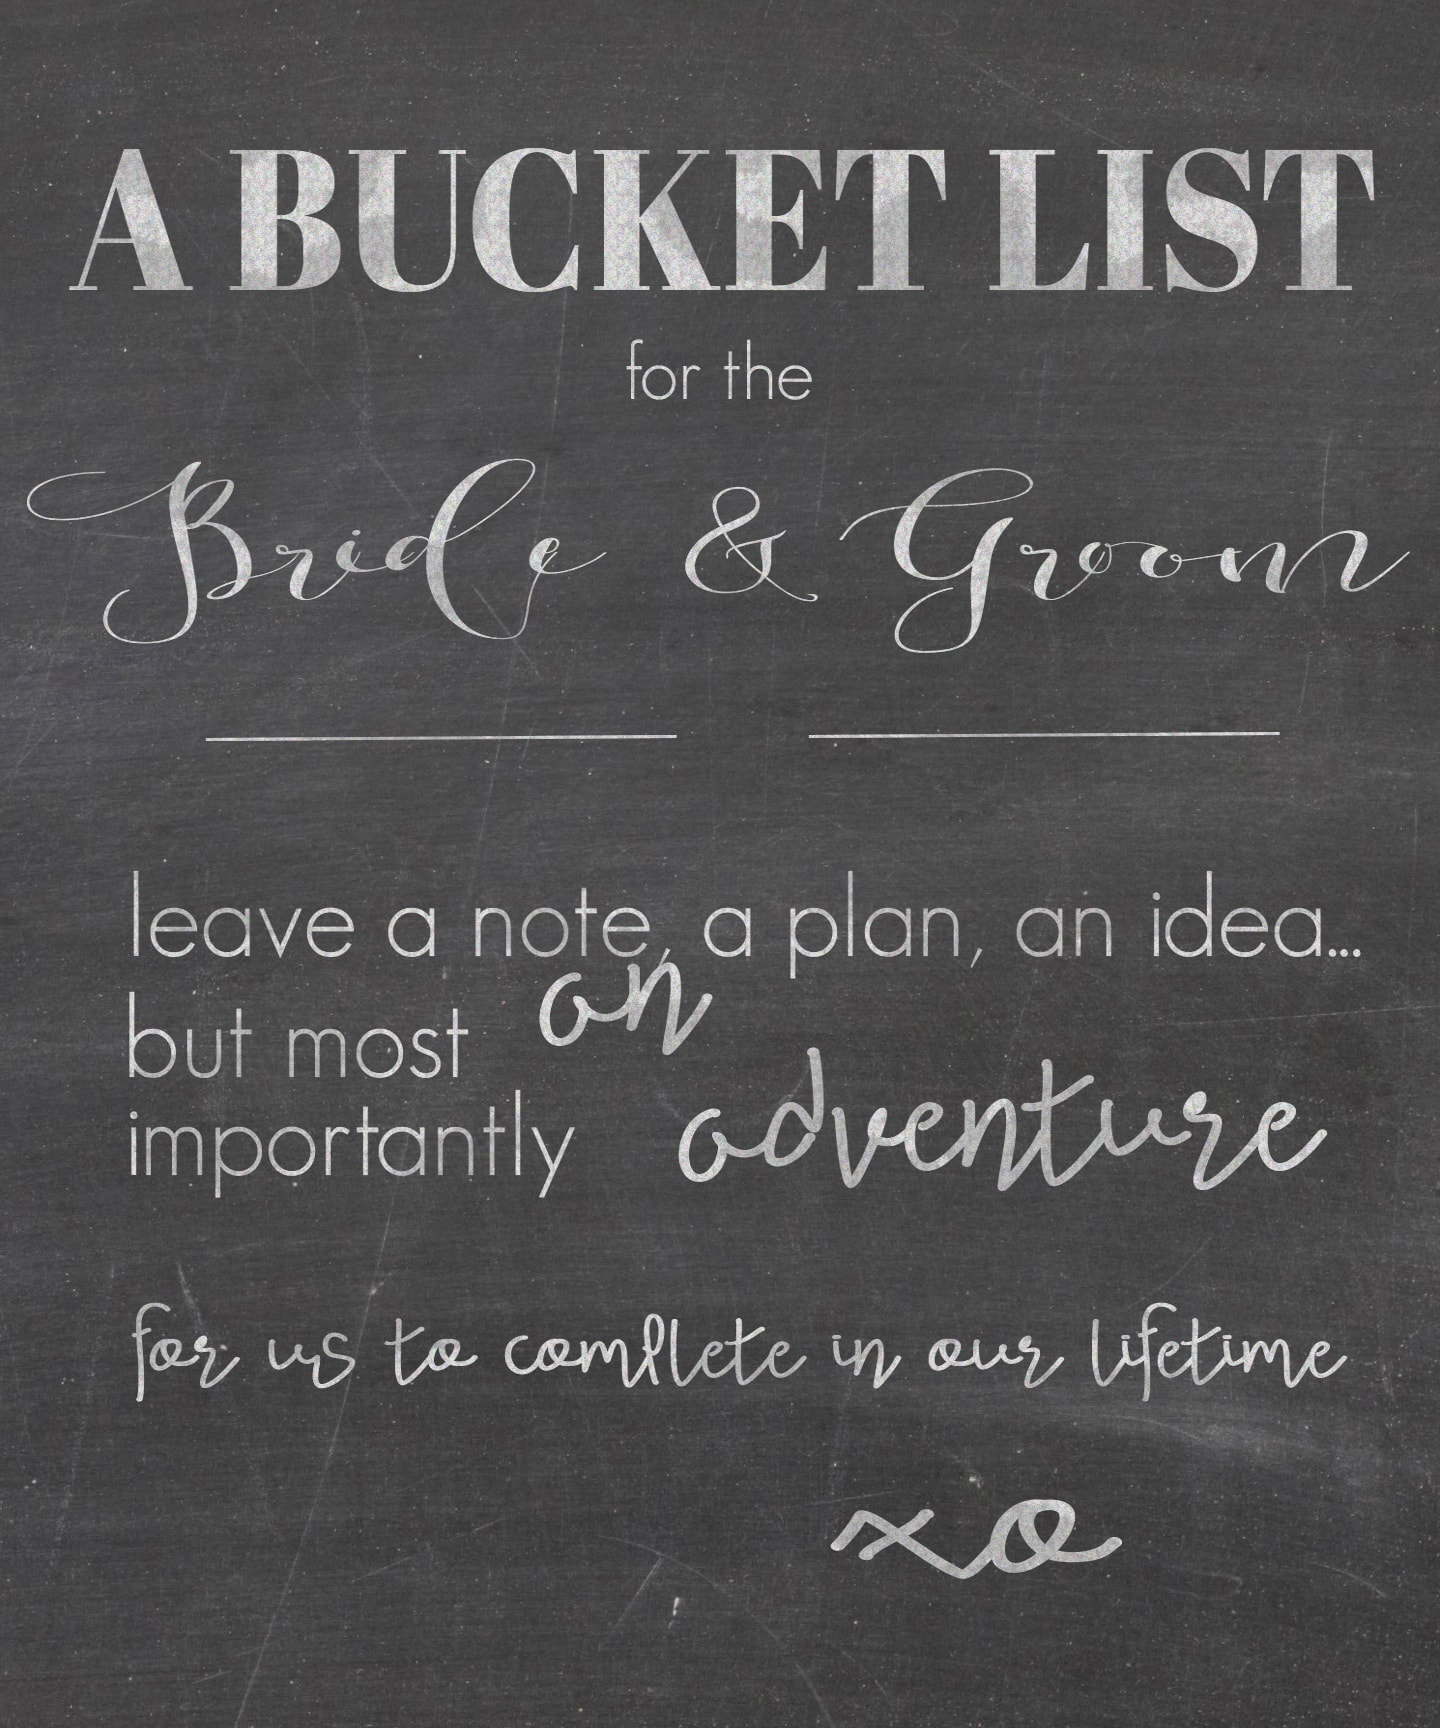 free printable! Chalkboard sign for a bucket list in lieu of a guest book | maisondepax.com